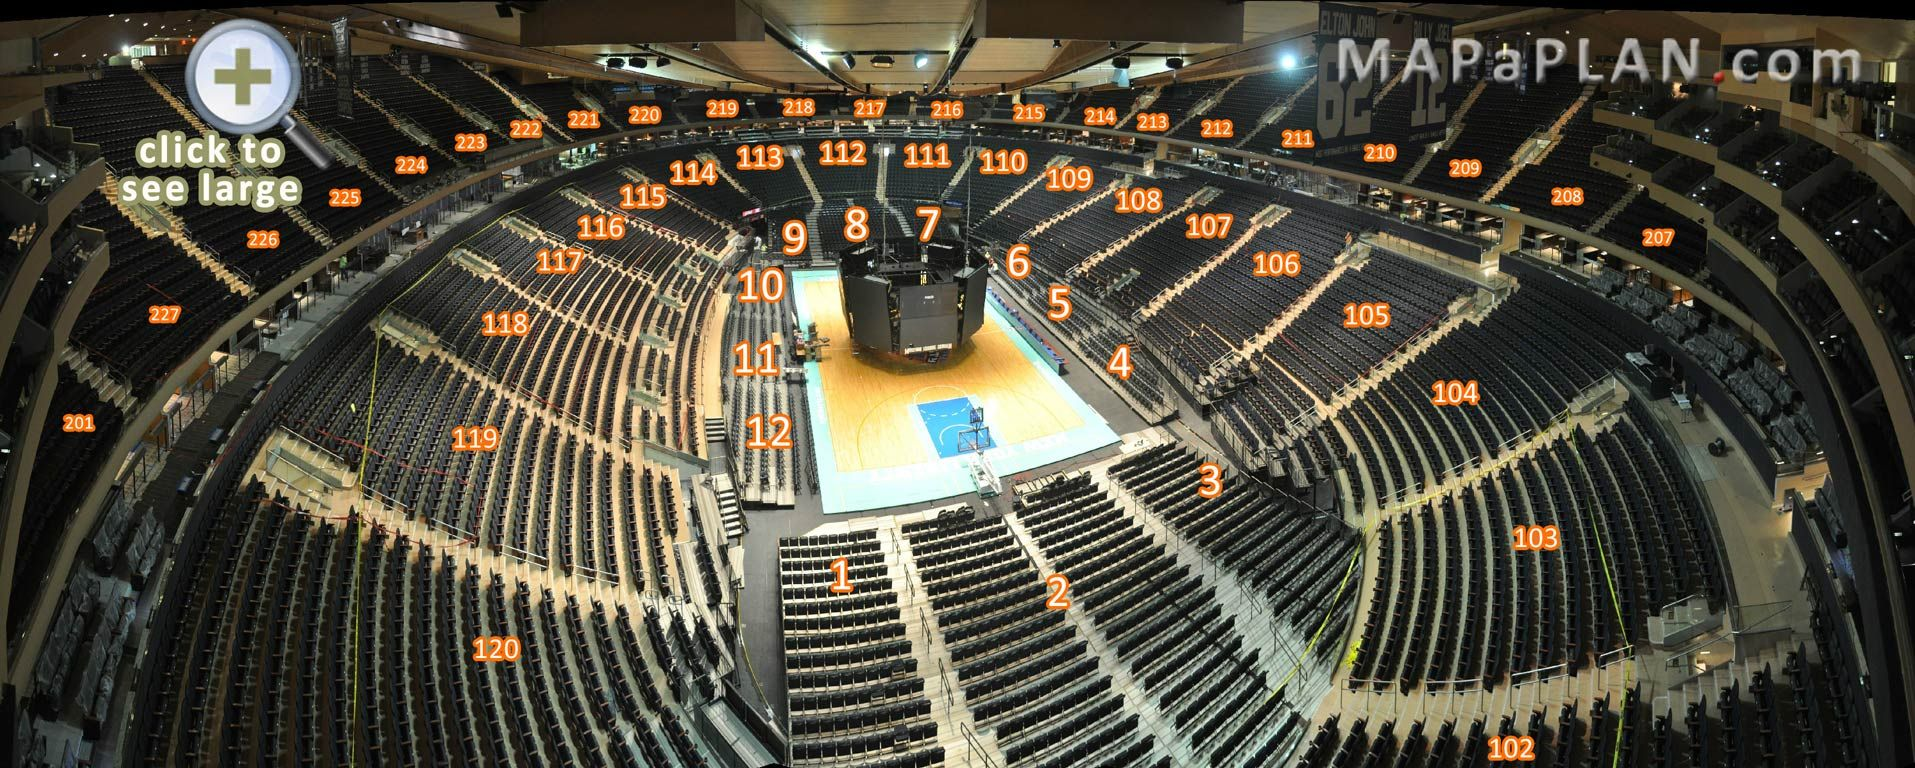 Madison square garden seating chart interactive basketball for Madison square garden parking